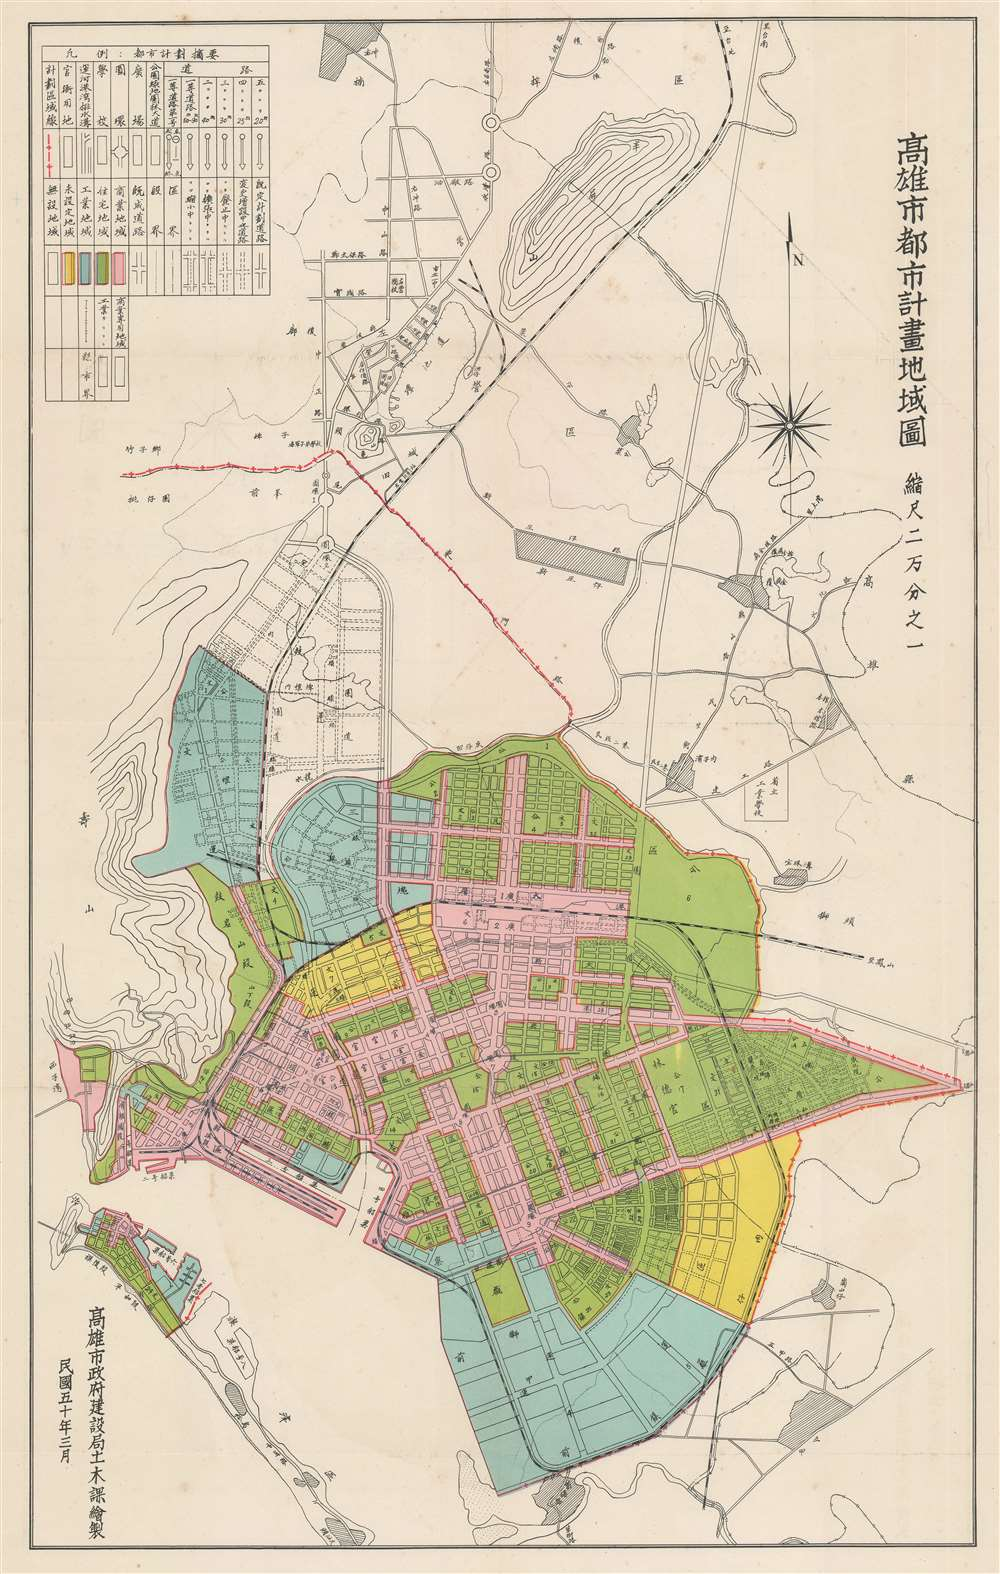 Map of Existing Roads in Kaohsiung City. / Kaohsiung City Planning Map. / Geographical Map of Kaohsiung City Zones.  /  高雄市都市既成道路圖 / 高雄市都市計畫圖 / 高雄市都市計書地域圖 - Alternate View 3